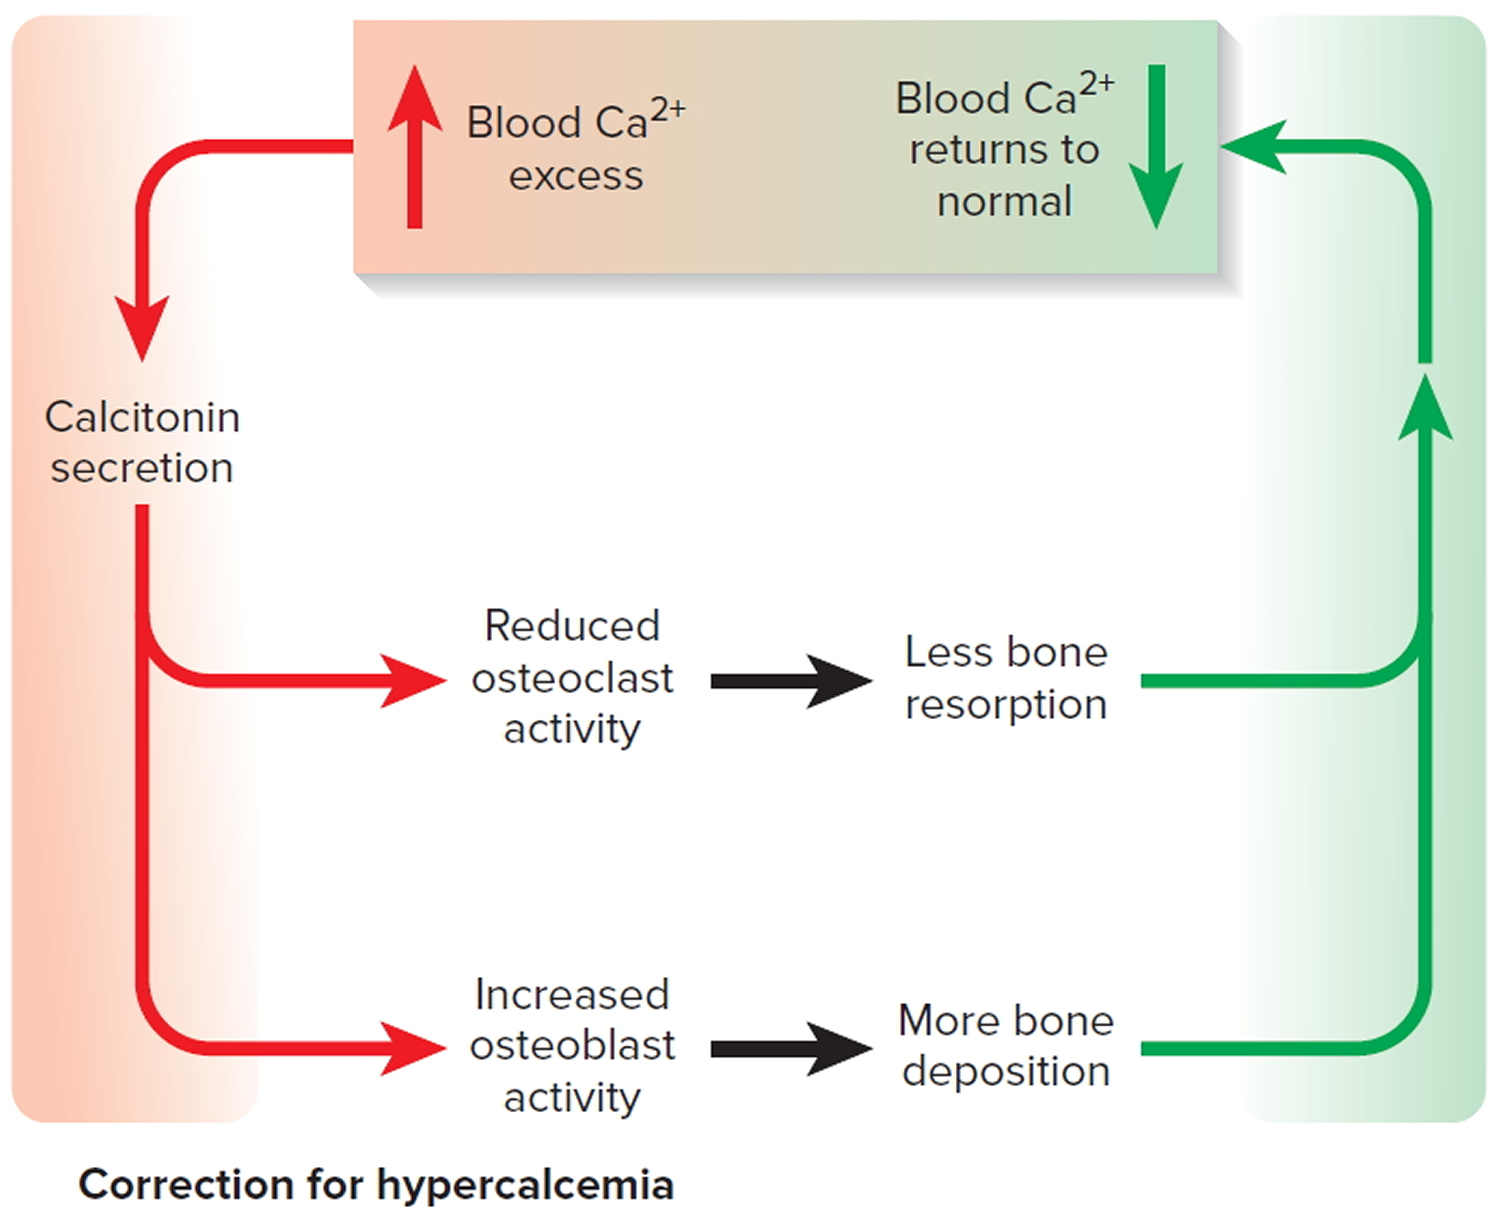 correction of high blood calcium